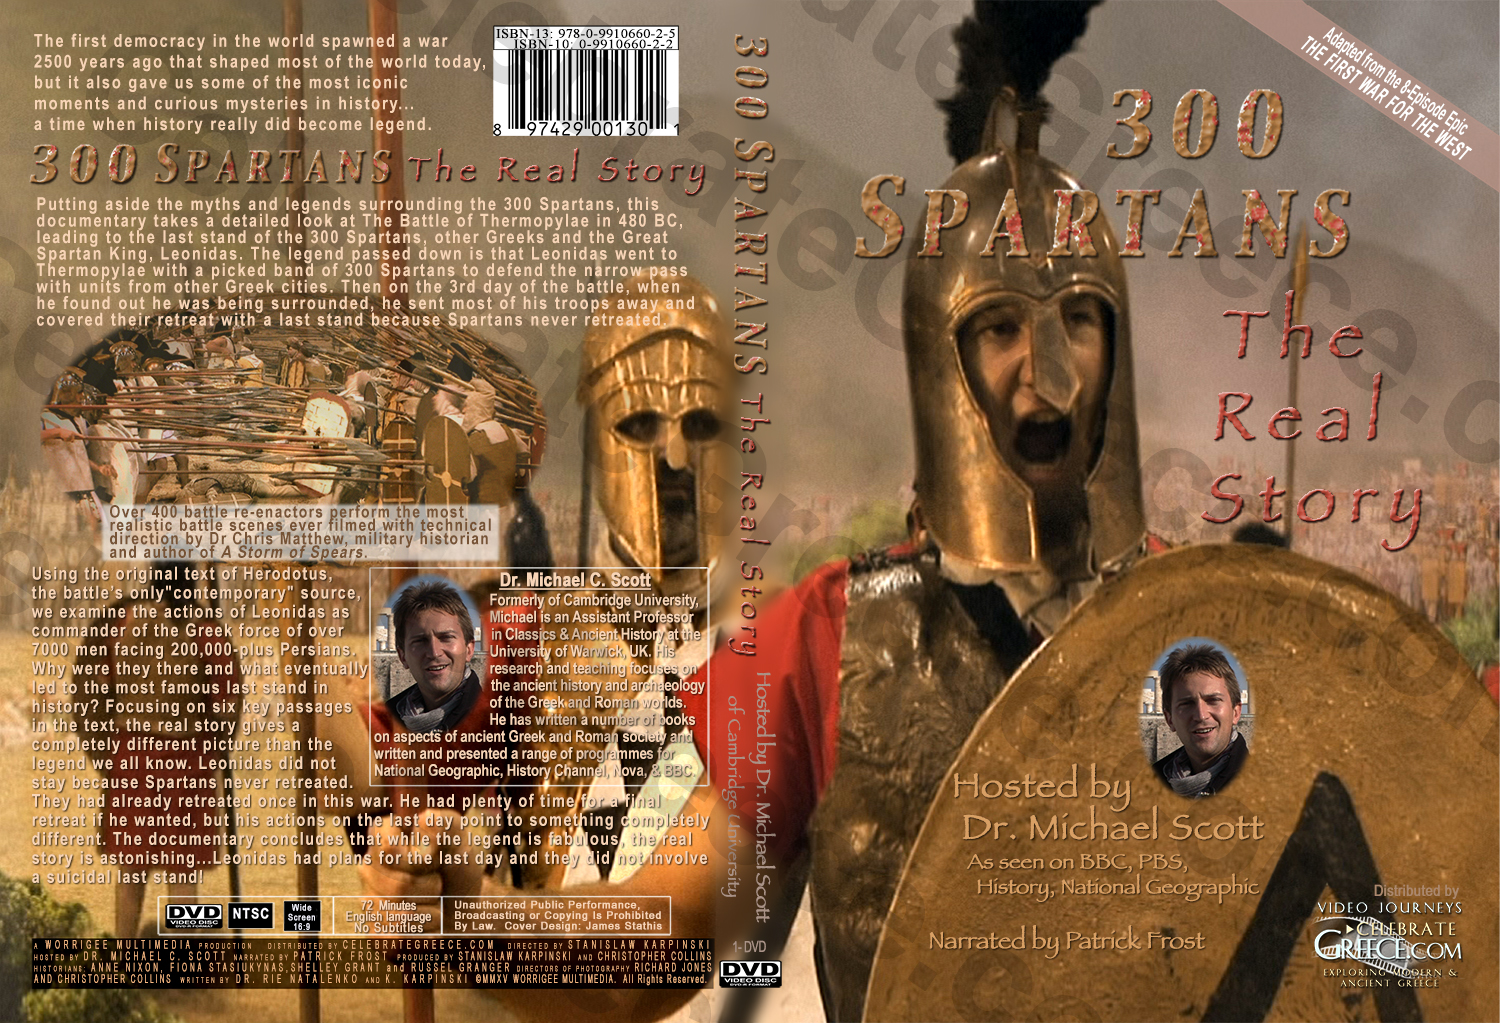 300 Spartans - The Real Story - DVD Cover